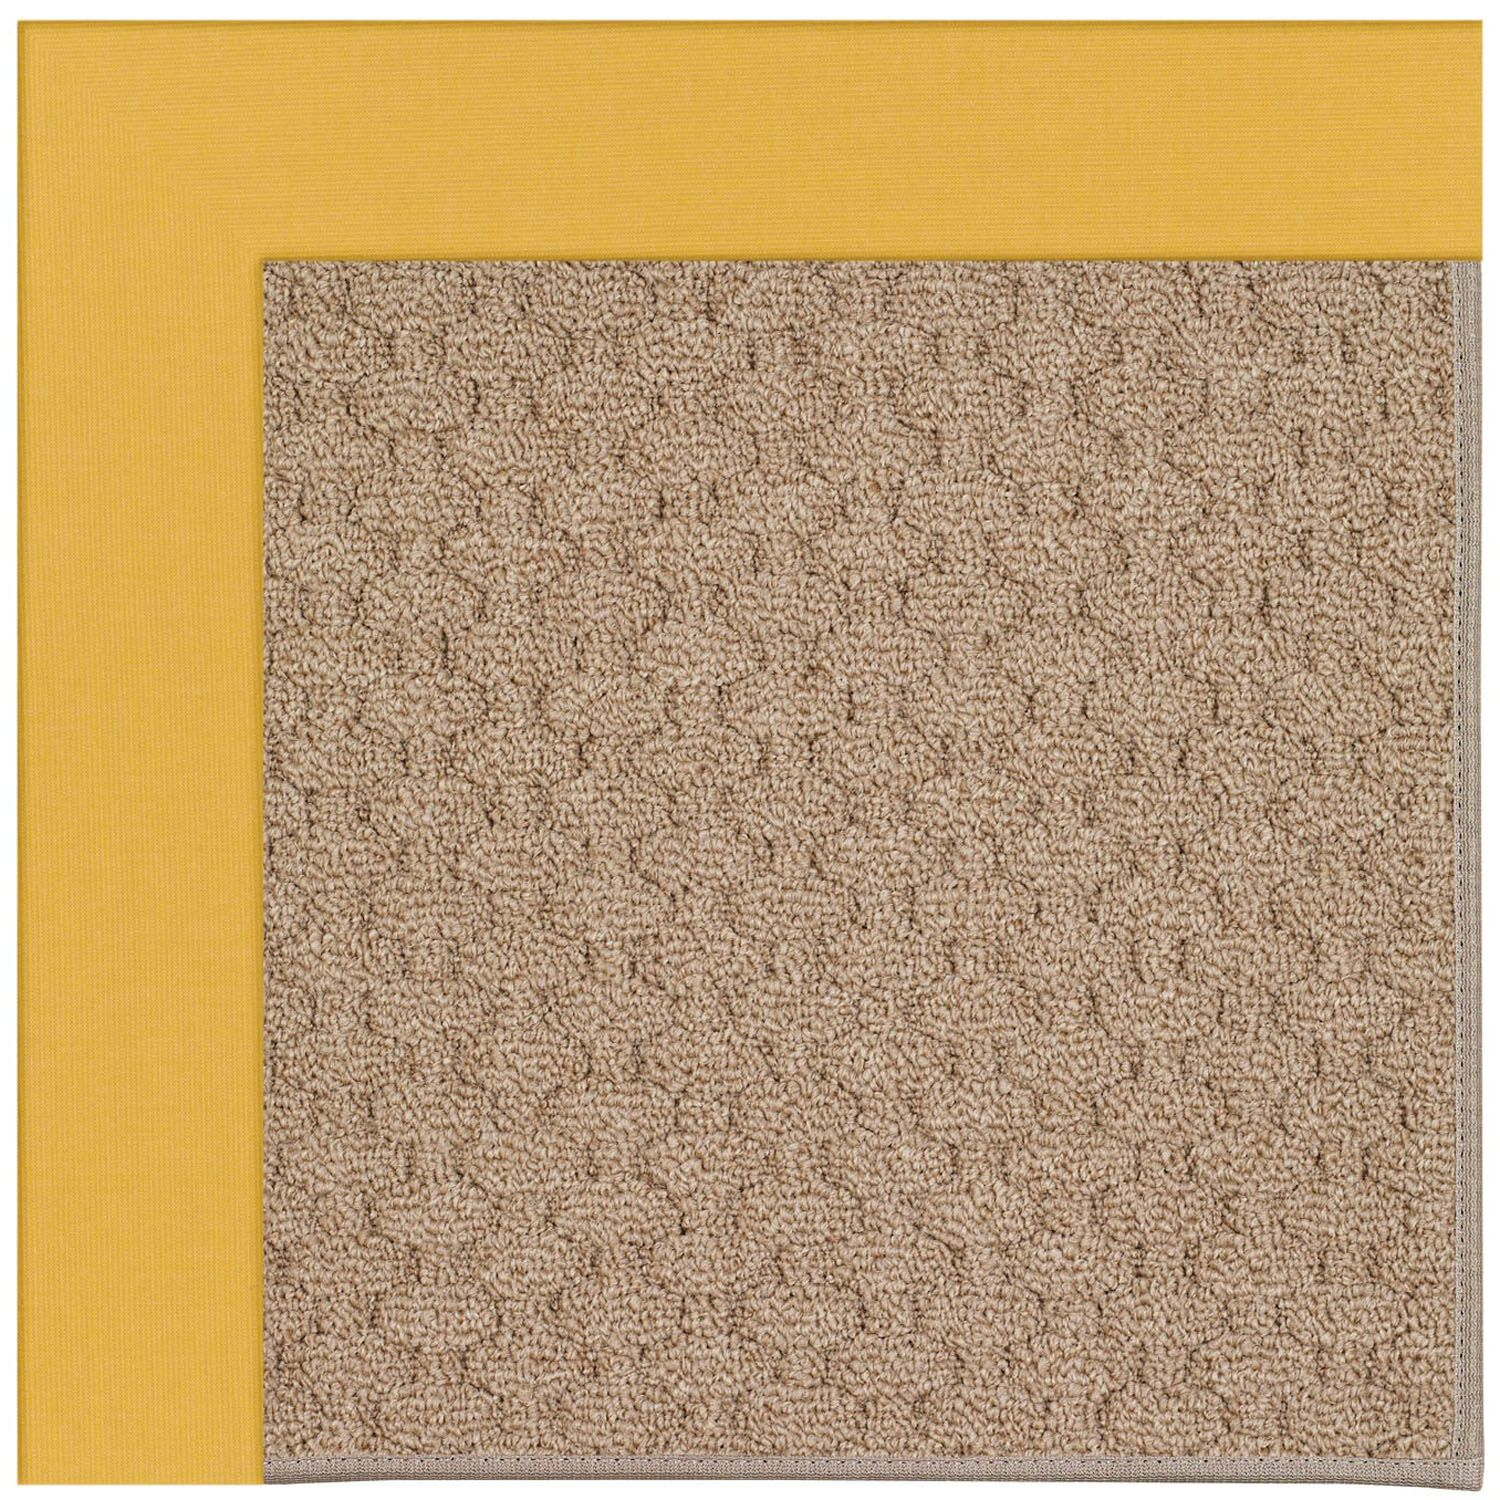 Lisle Machine Tufted Jonquil/Brown Indoor/Outdoor Area Rug Rug Size: Square 6'